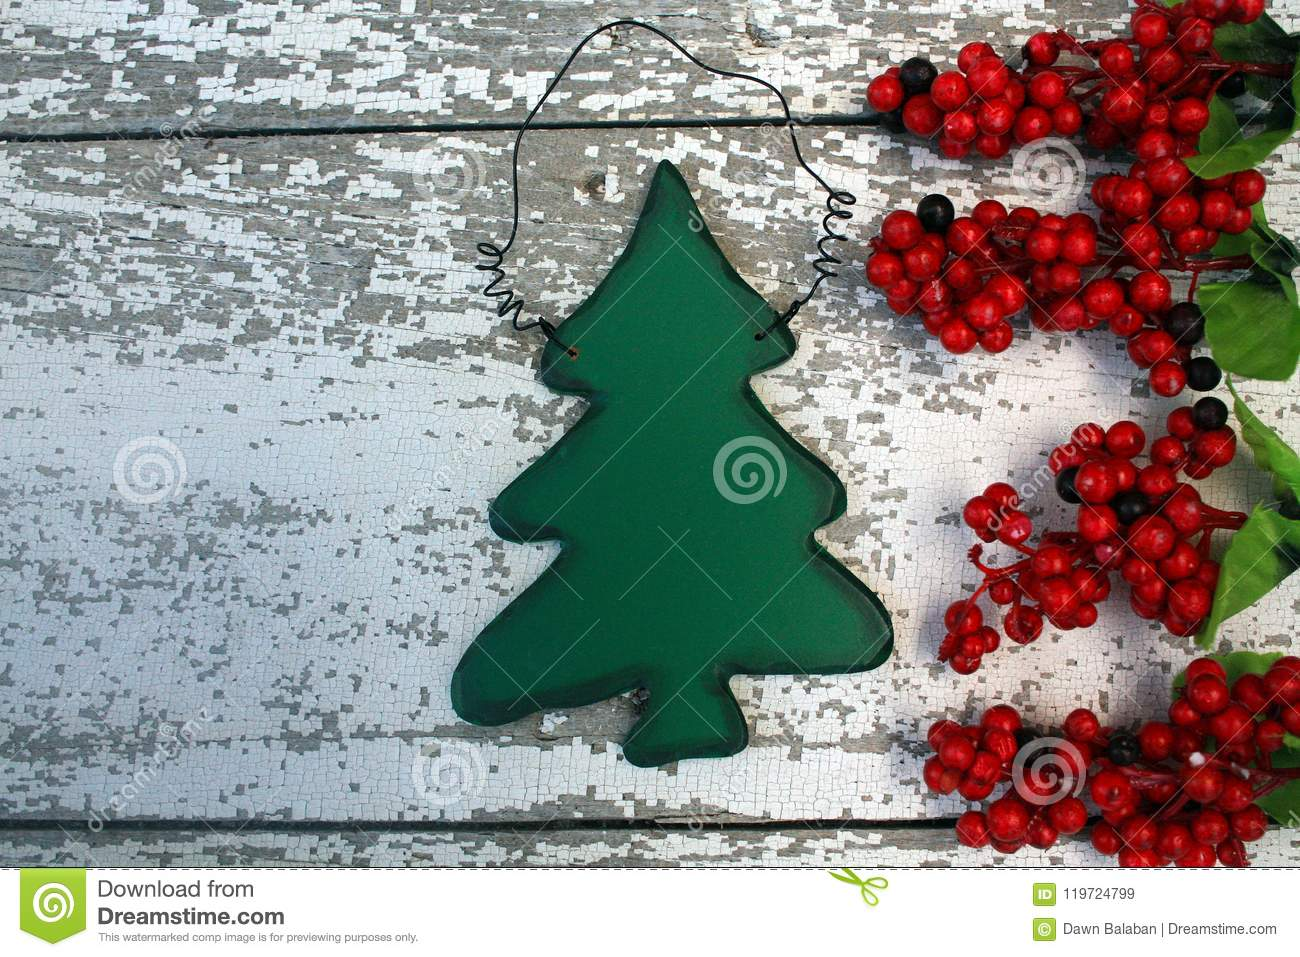 christmas tree decoration on white background with red berries - Rustic Christmas Tree Decorations For Sale